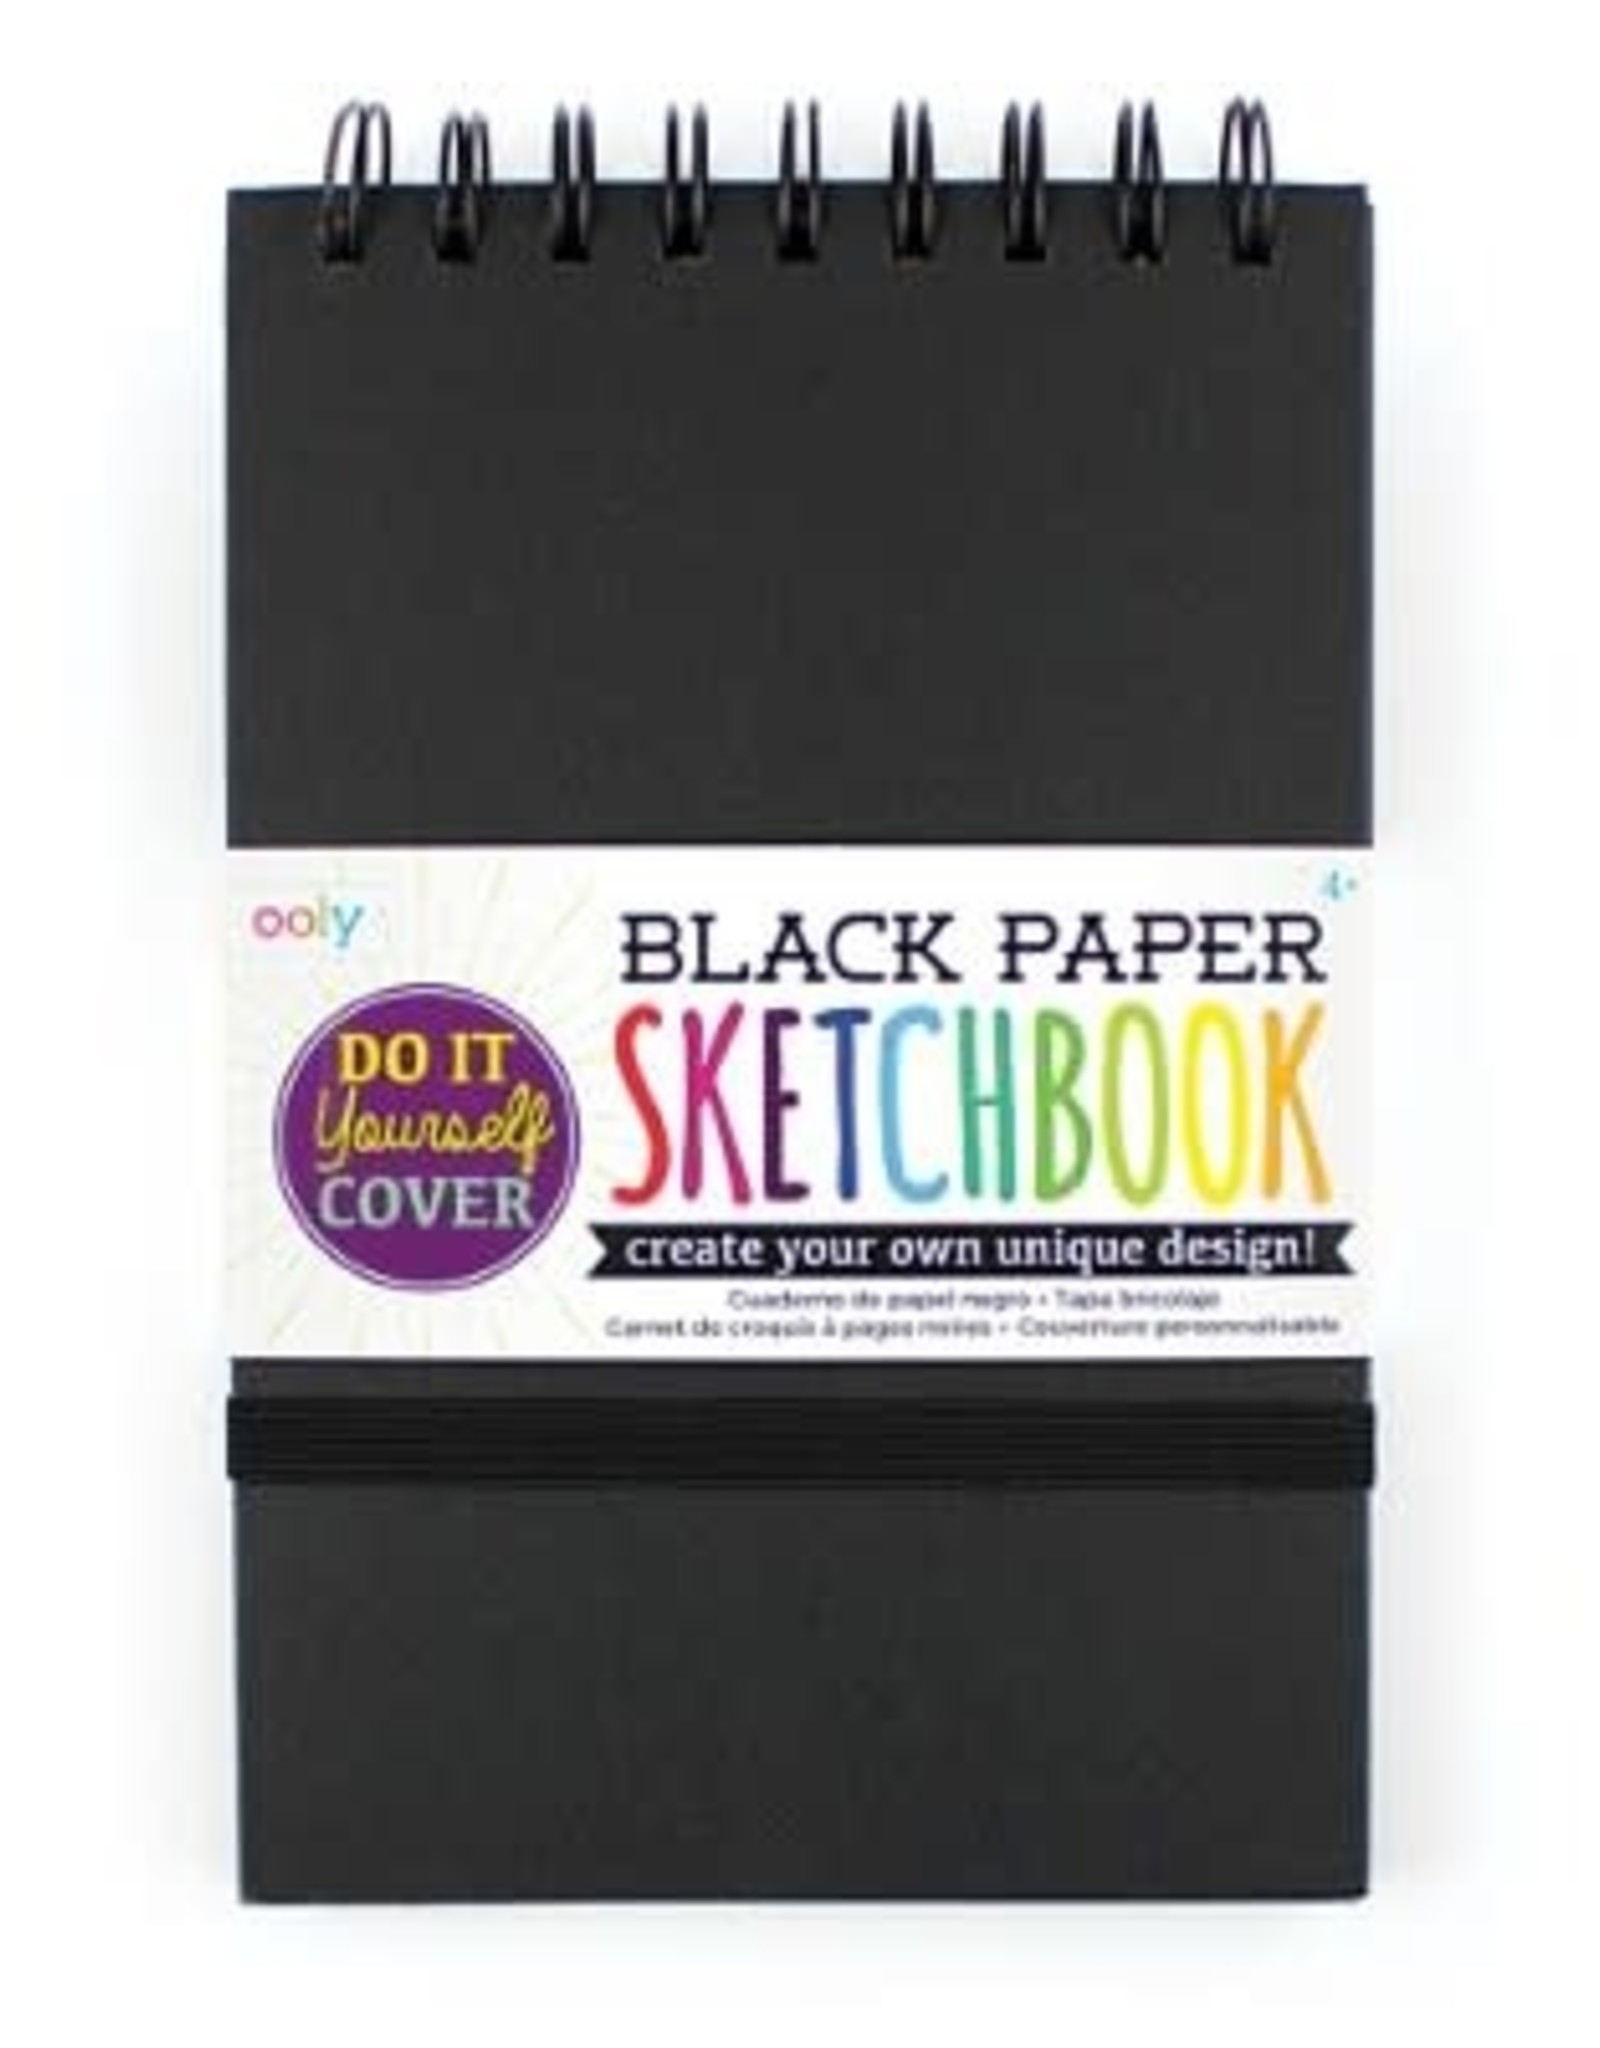 OOLY DIY SKETCHBOOK - SMALL - BLACK